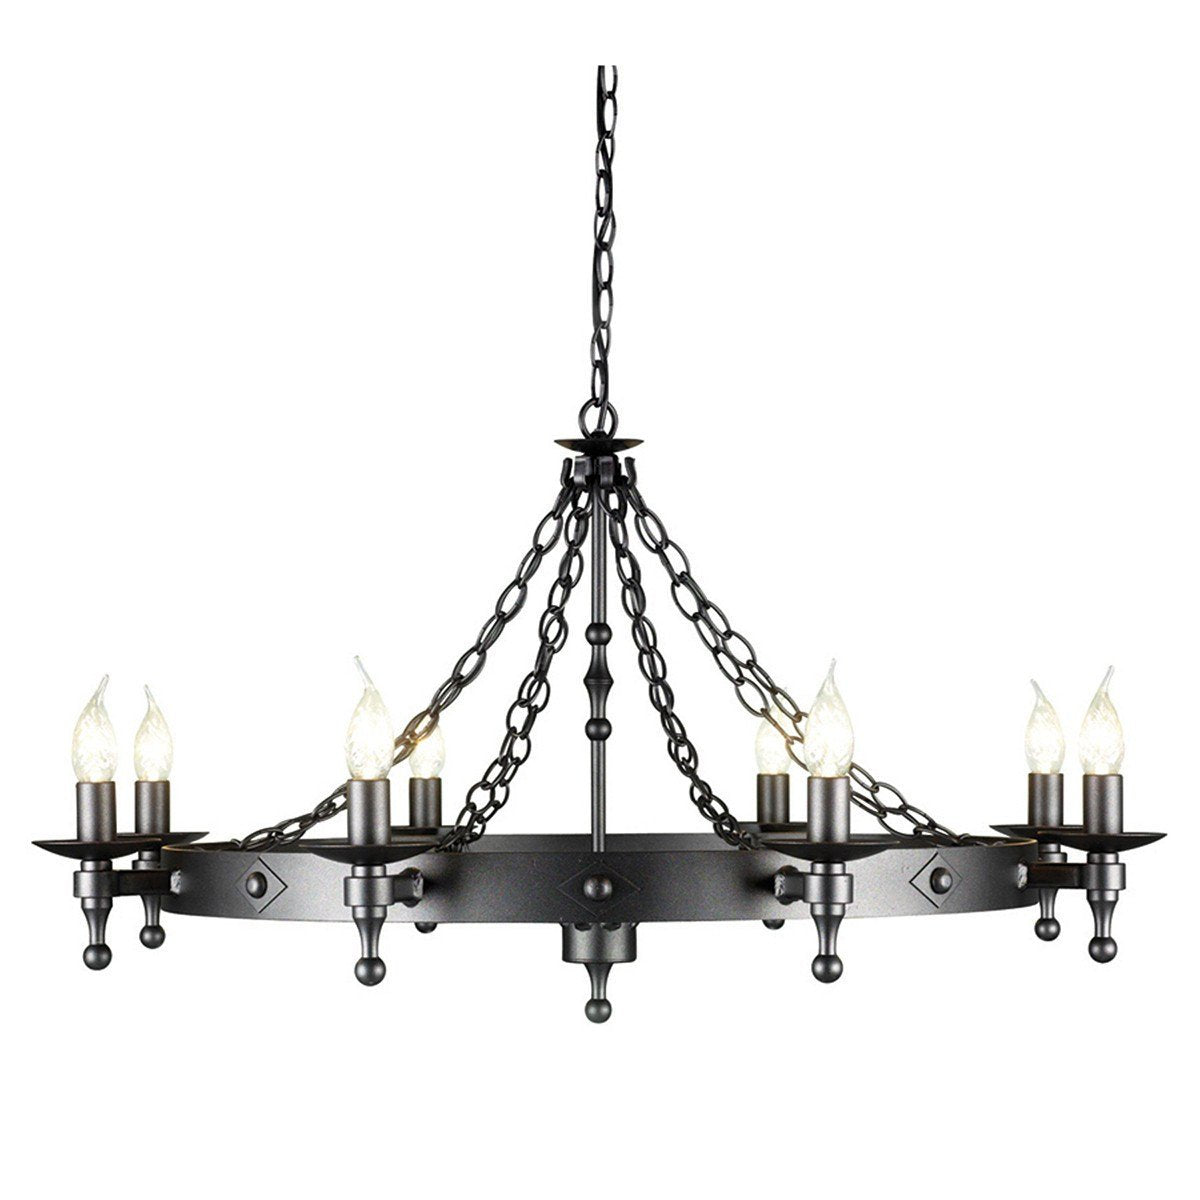 Warwick 8 Light Chandelier Graphite - London Lighting - 1